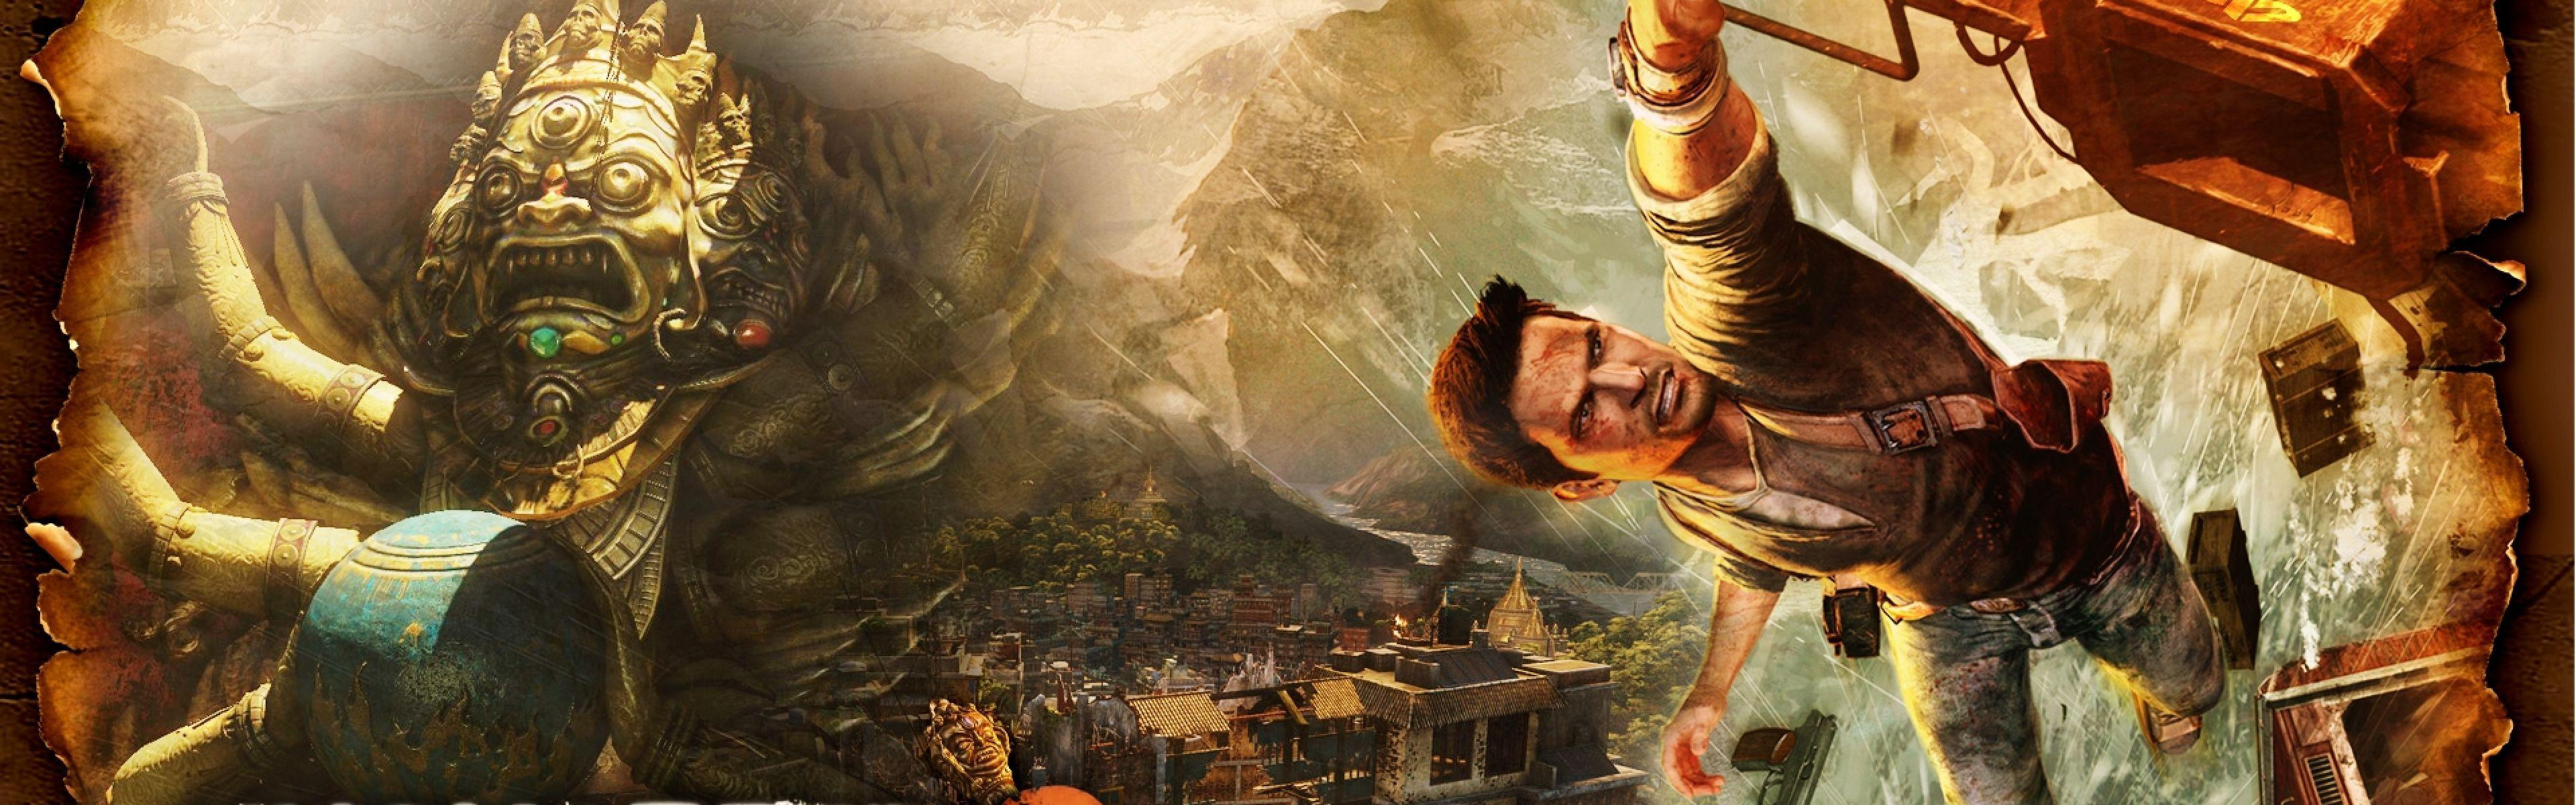 Download Wallpapers 3840x1200 Uncharted 2 among thieves, City